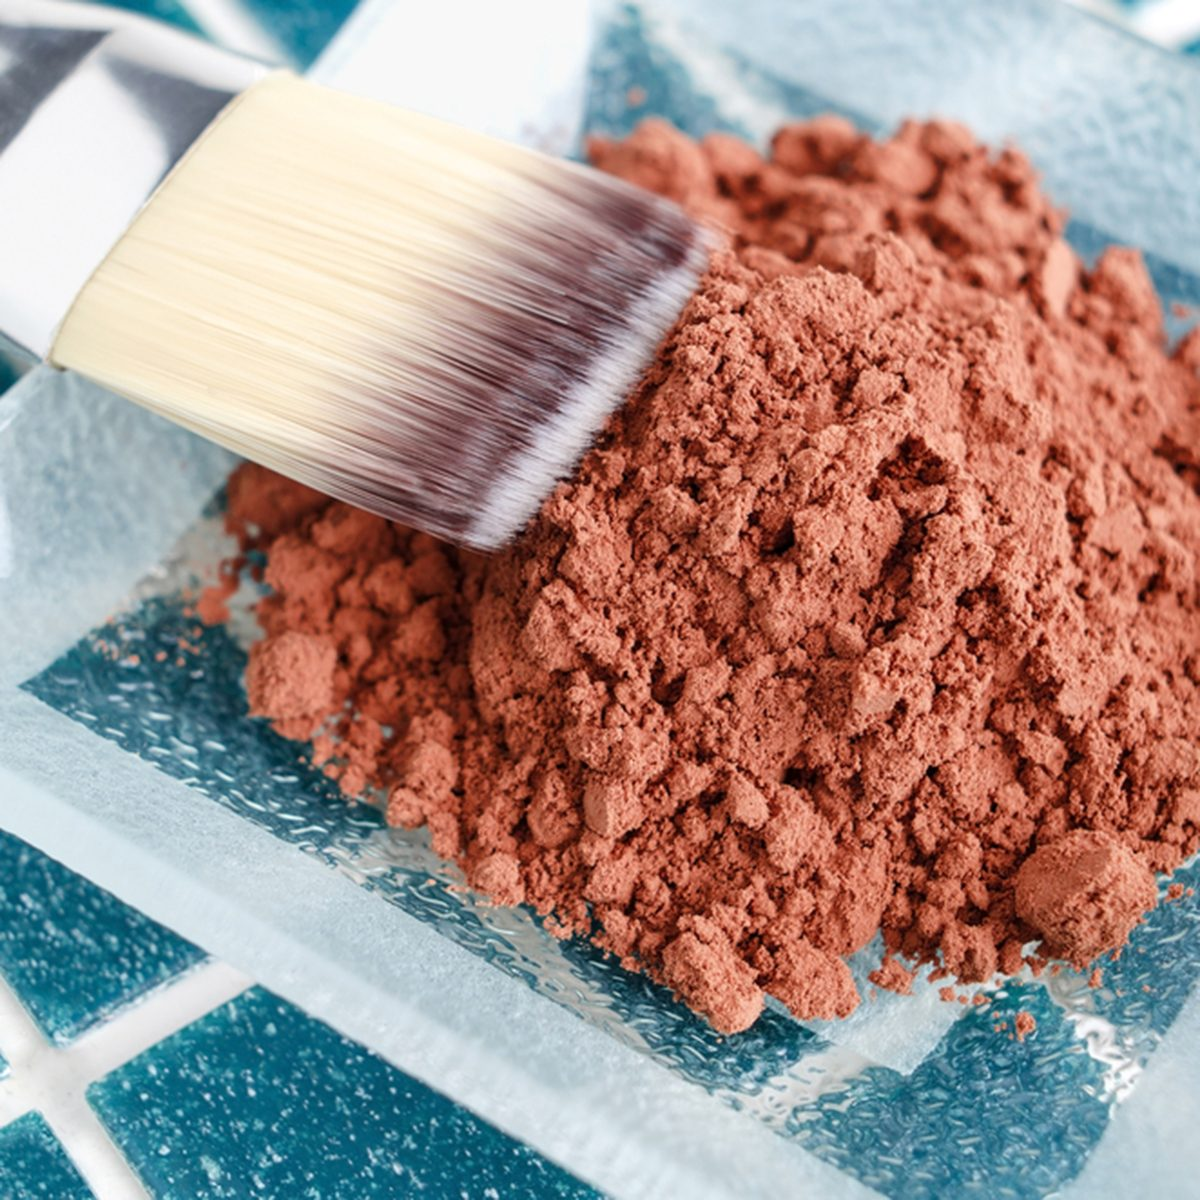 Cosmetic mask made of cocoa powder